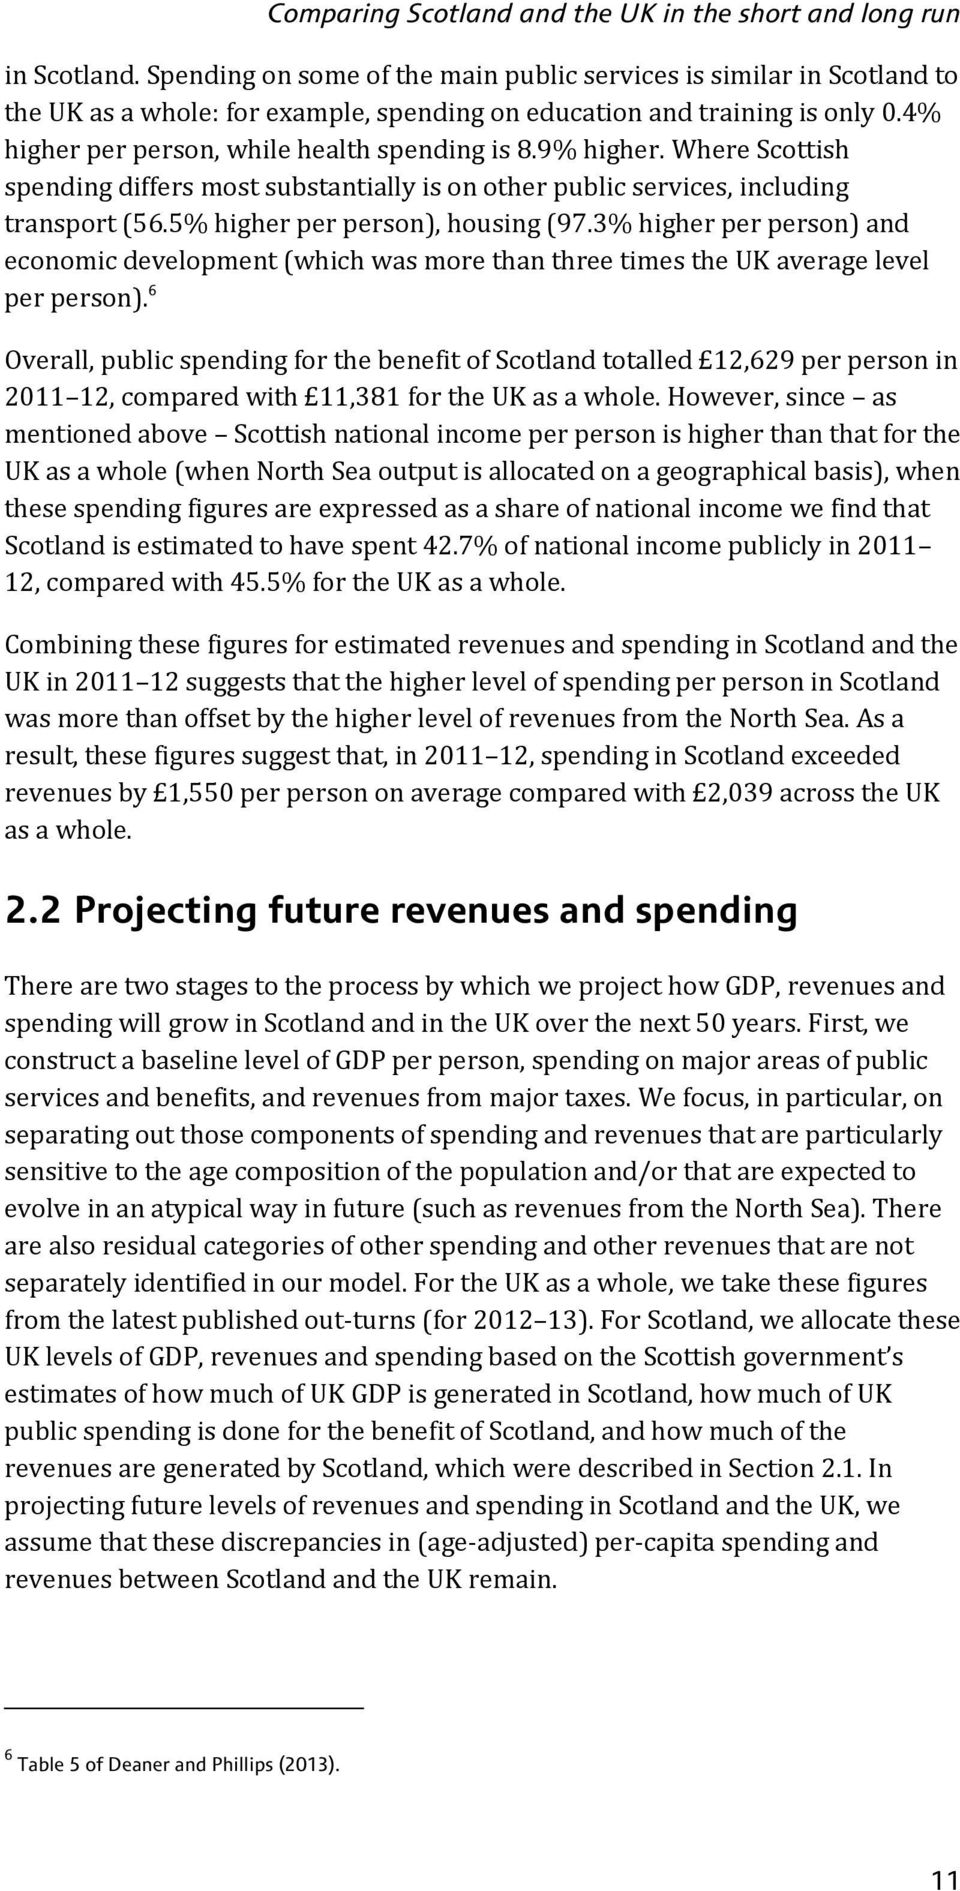 9% higher. Where Scottish spending differs most substantially is on other public services, including transport (56.5% higher per person), housing (97.